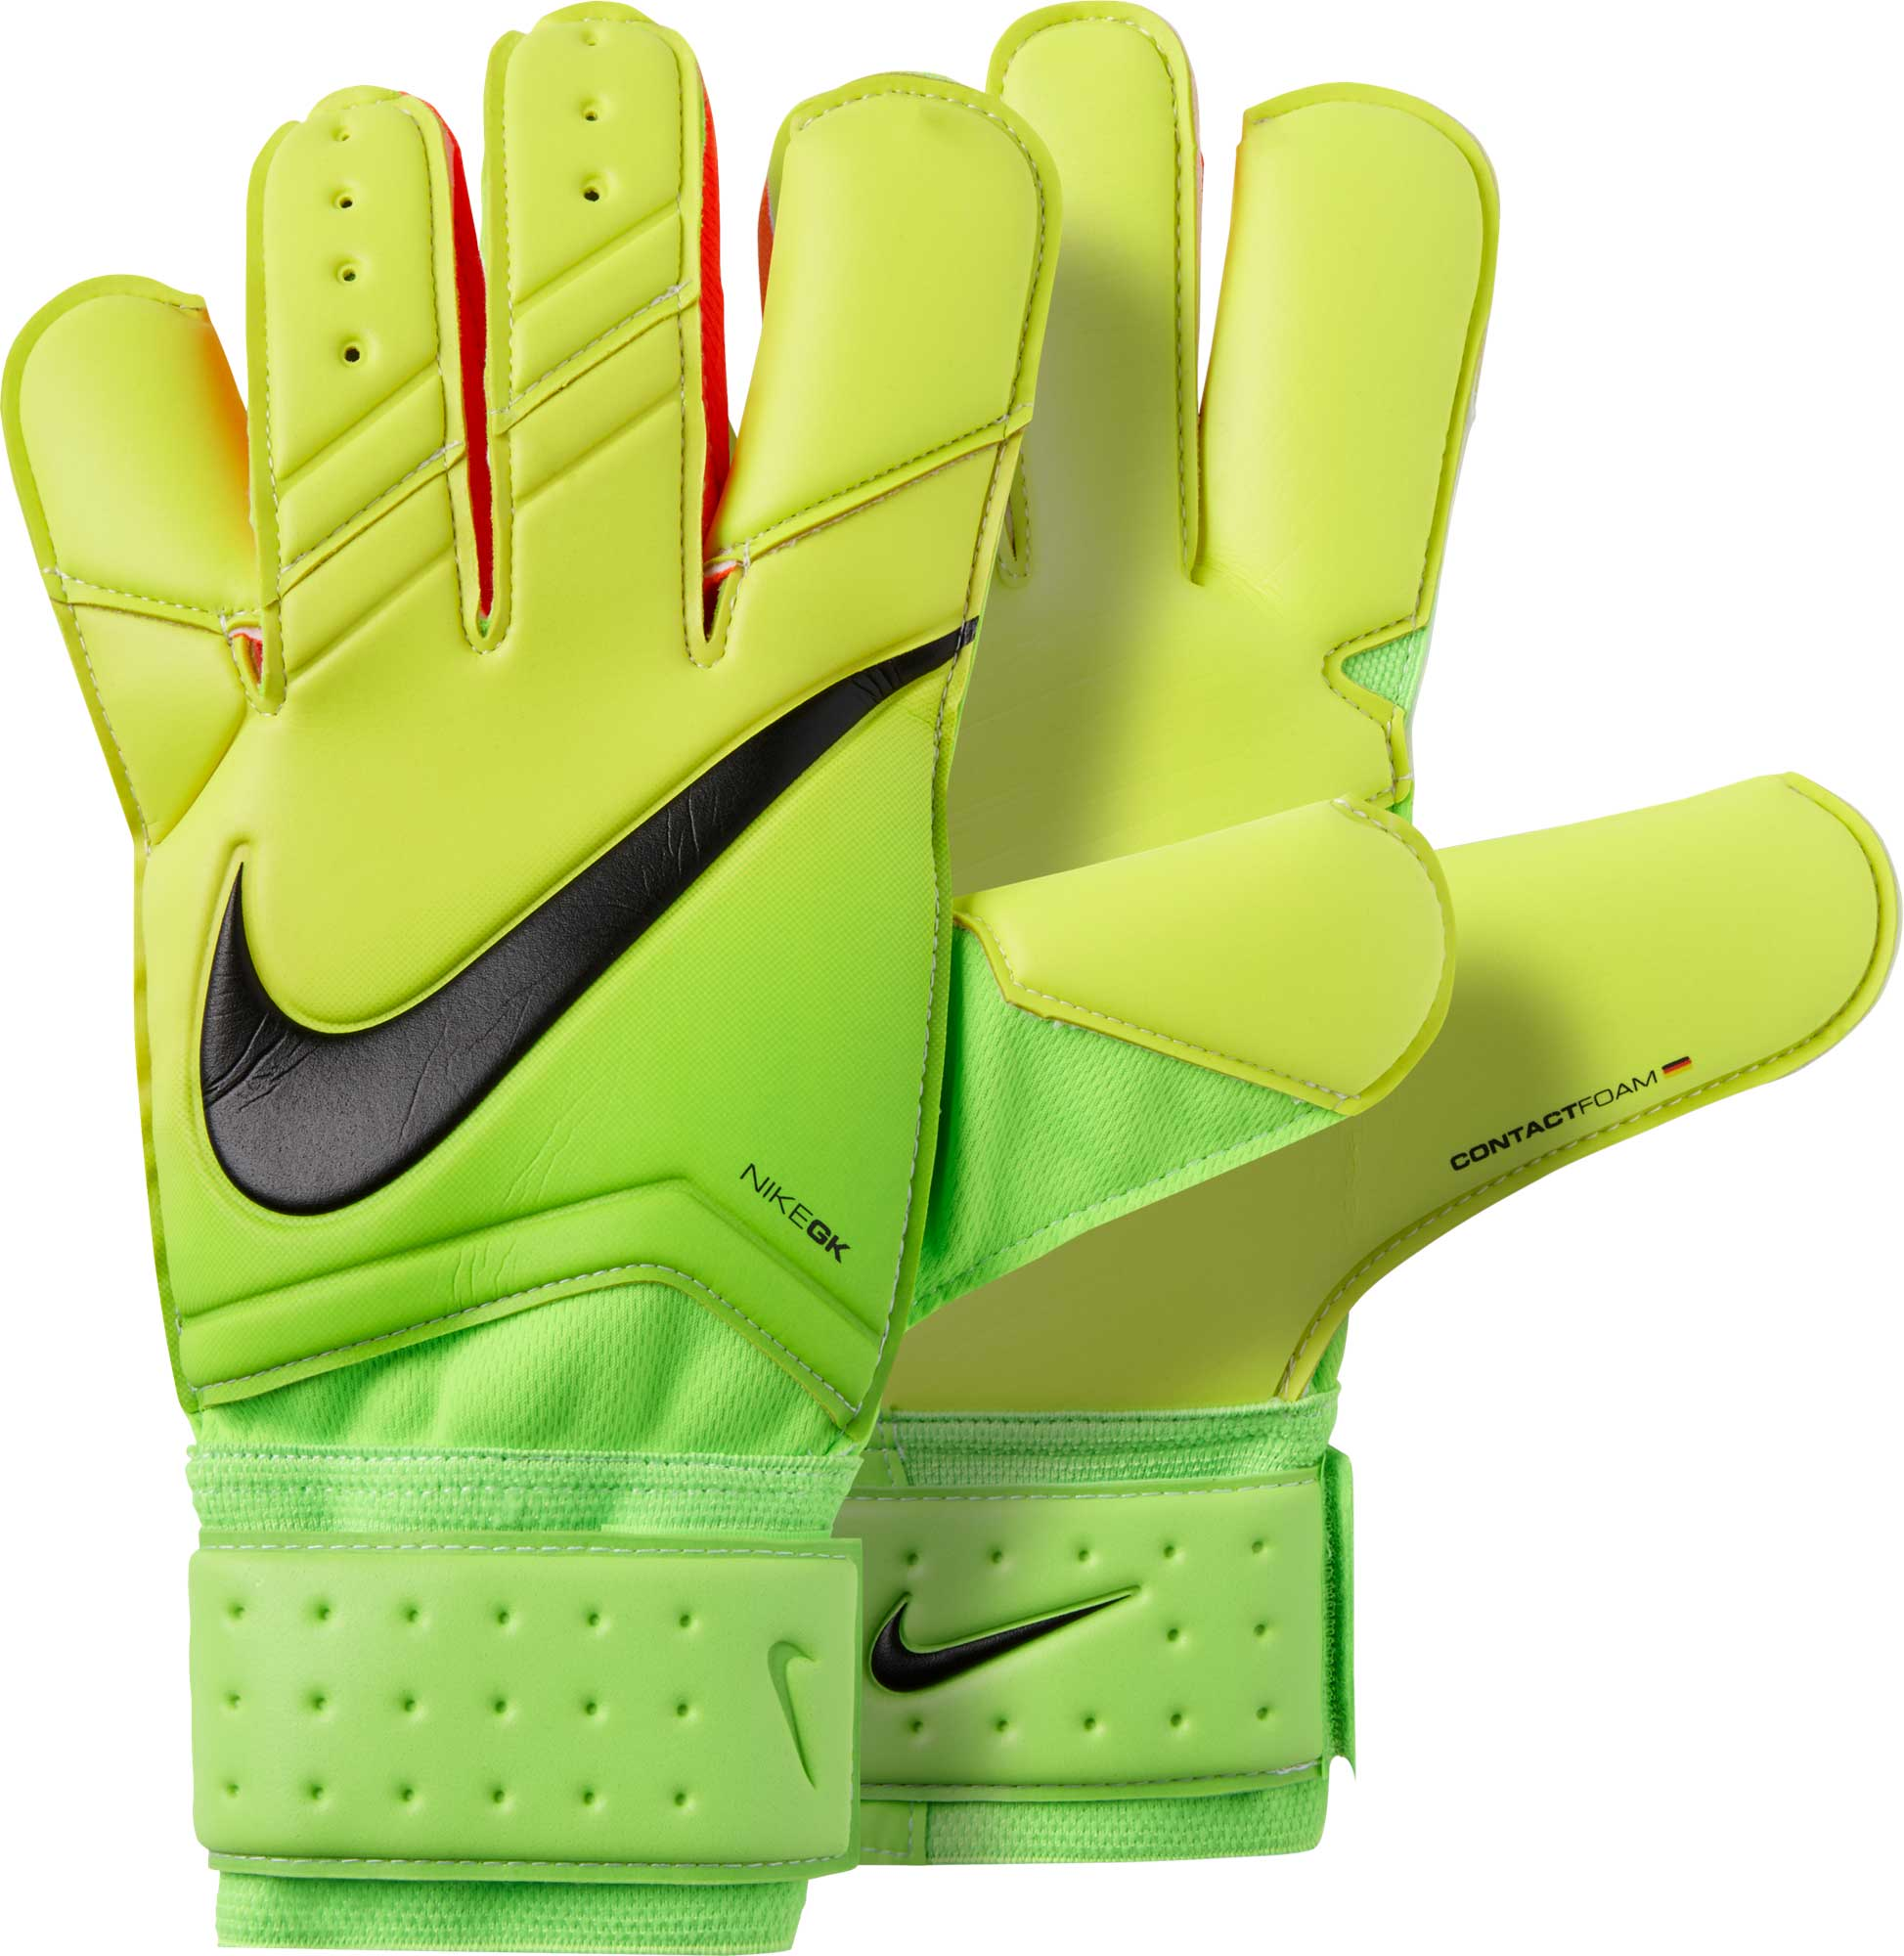 0e74991c5 Nike Vapor Grip 3 Goalkeeper Gloves - Electric Green & Volt - Soccer ...